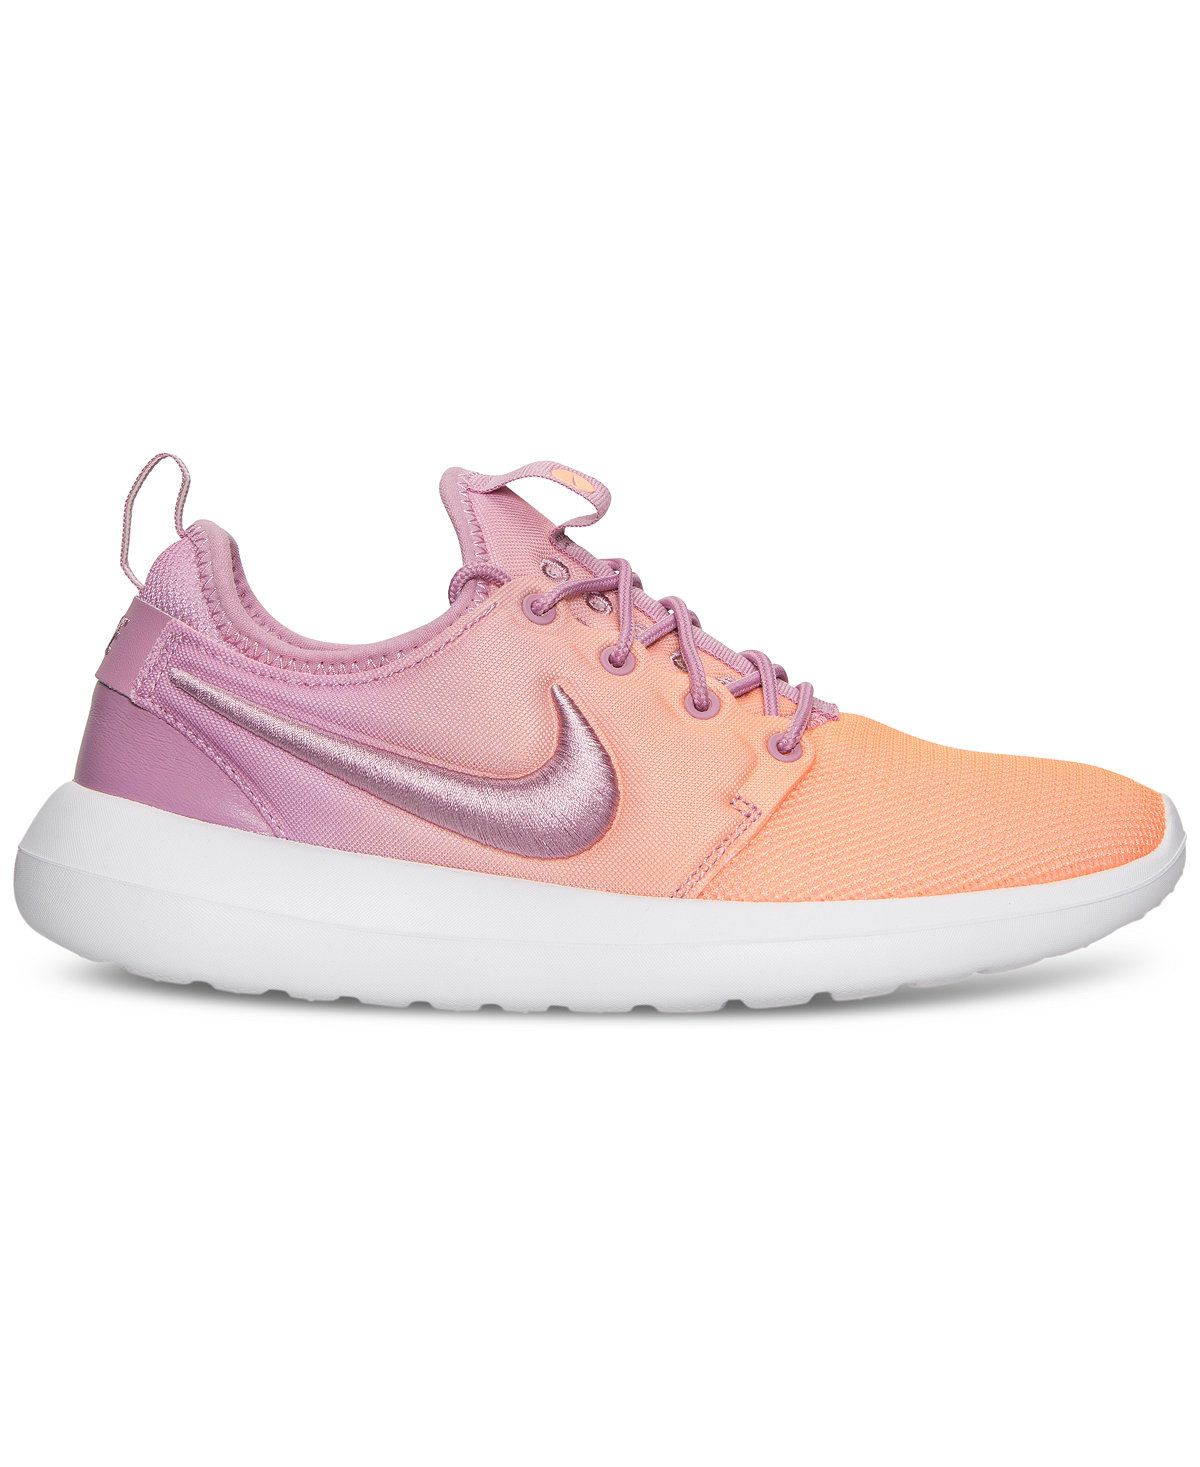 2e580481acc4 Nike Women s Roshe Two Breeze Casual Sneakers from Finish Line - Finish  Line Athletic Sneakers - Shoes - Macy s